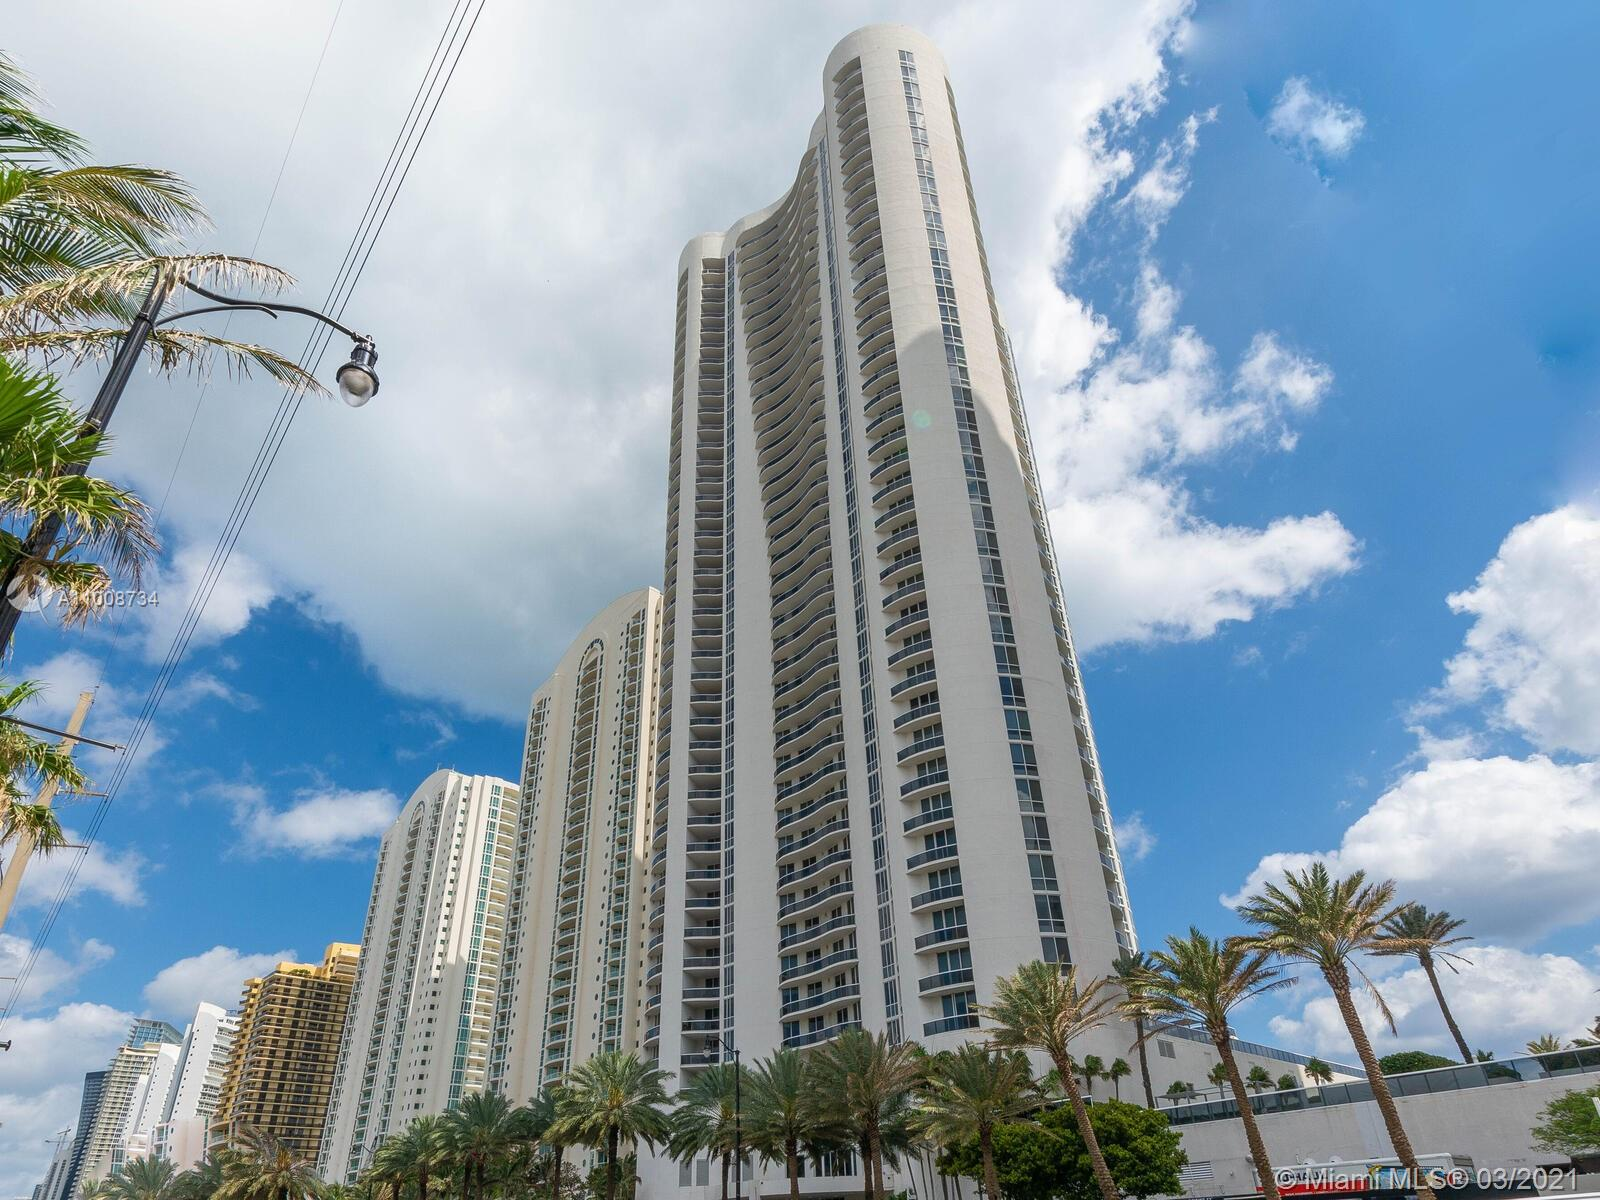 Just Reduced!! You'll love this oceanfront stunning condo located on the 40th floor of Trump Towers 1 in Sunny Isles Beach and a few blocks from Norman S. Edelcup/Sunny Isles Beach K-8 school. This 3-bedroom, 3.5 bathroom turn key condo has 4 balconies—giving you almost 3000 sq. ft. of spacious elegance,marble floors throughout, and a modern gourmet kitchen. Every night, enjoy your wine overlooking the Intracoastal and city, then wake up to a spectacular sunrise over the ocean. All of this situated in a convenient, friendly neighborhood with outstanding schools, minutes from Bal Harbor and Aventura.